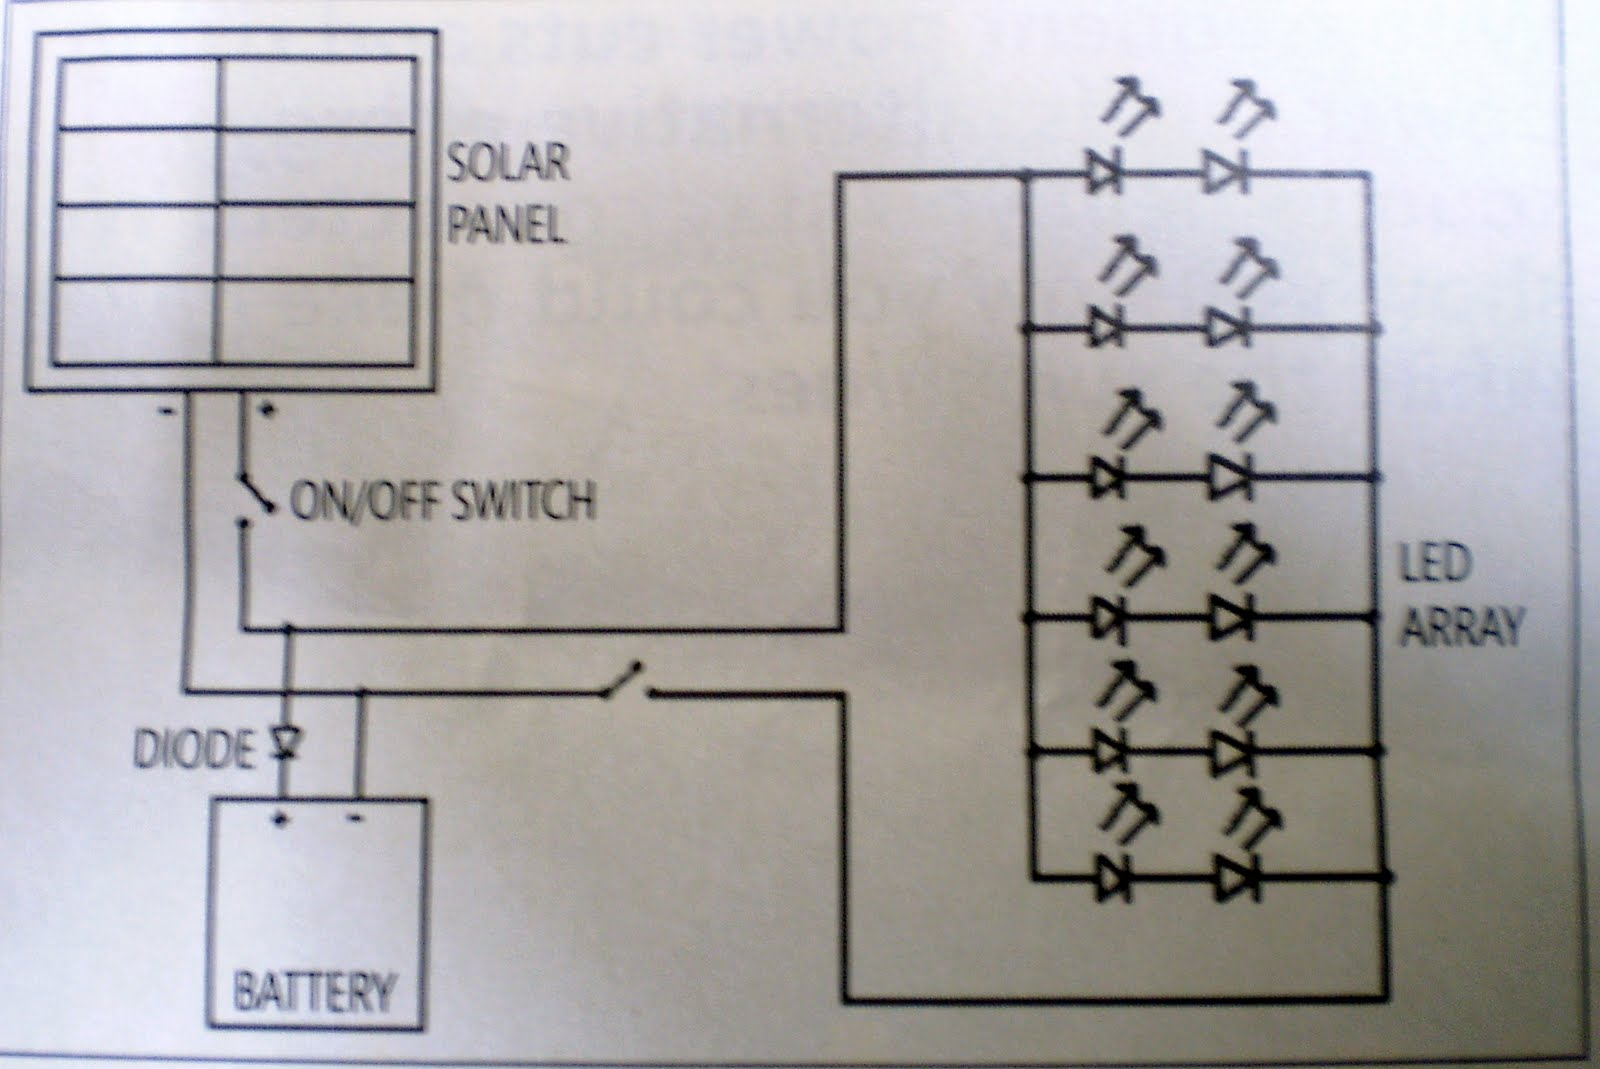 Gadgets And Everything Led Array Wiring Diagram After You Have Assembled The Lamp O Put It In A Enclosure Can Use Shoebox Or Something Like That To House